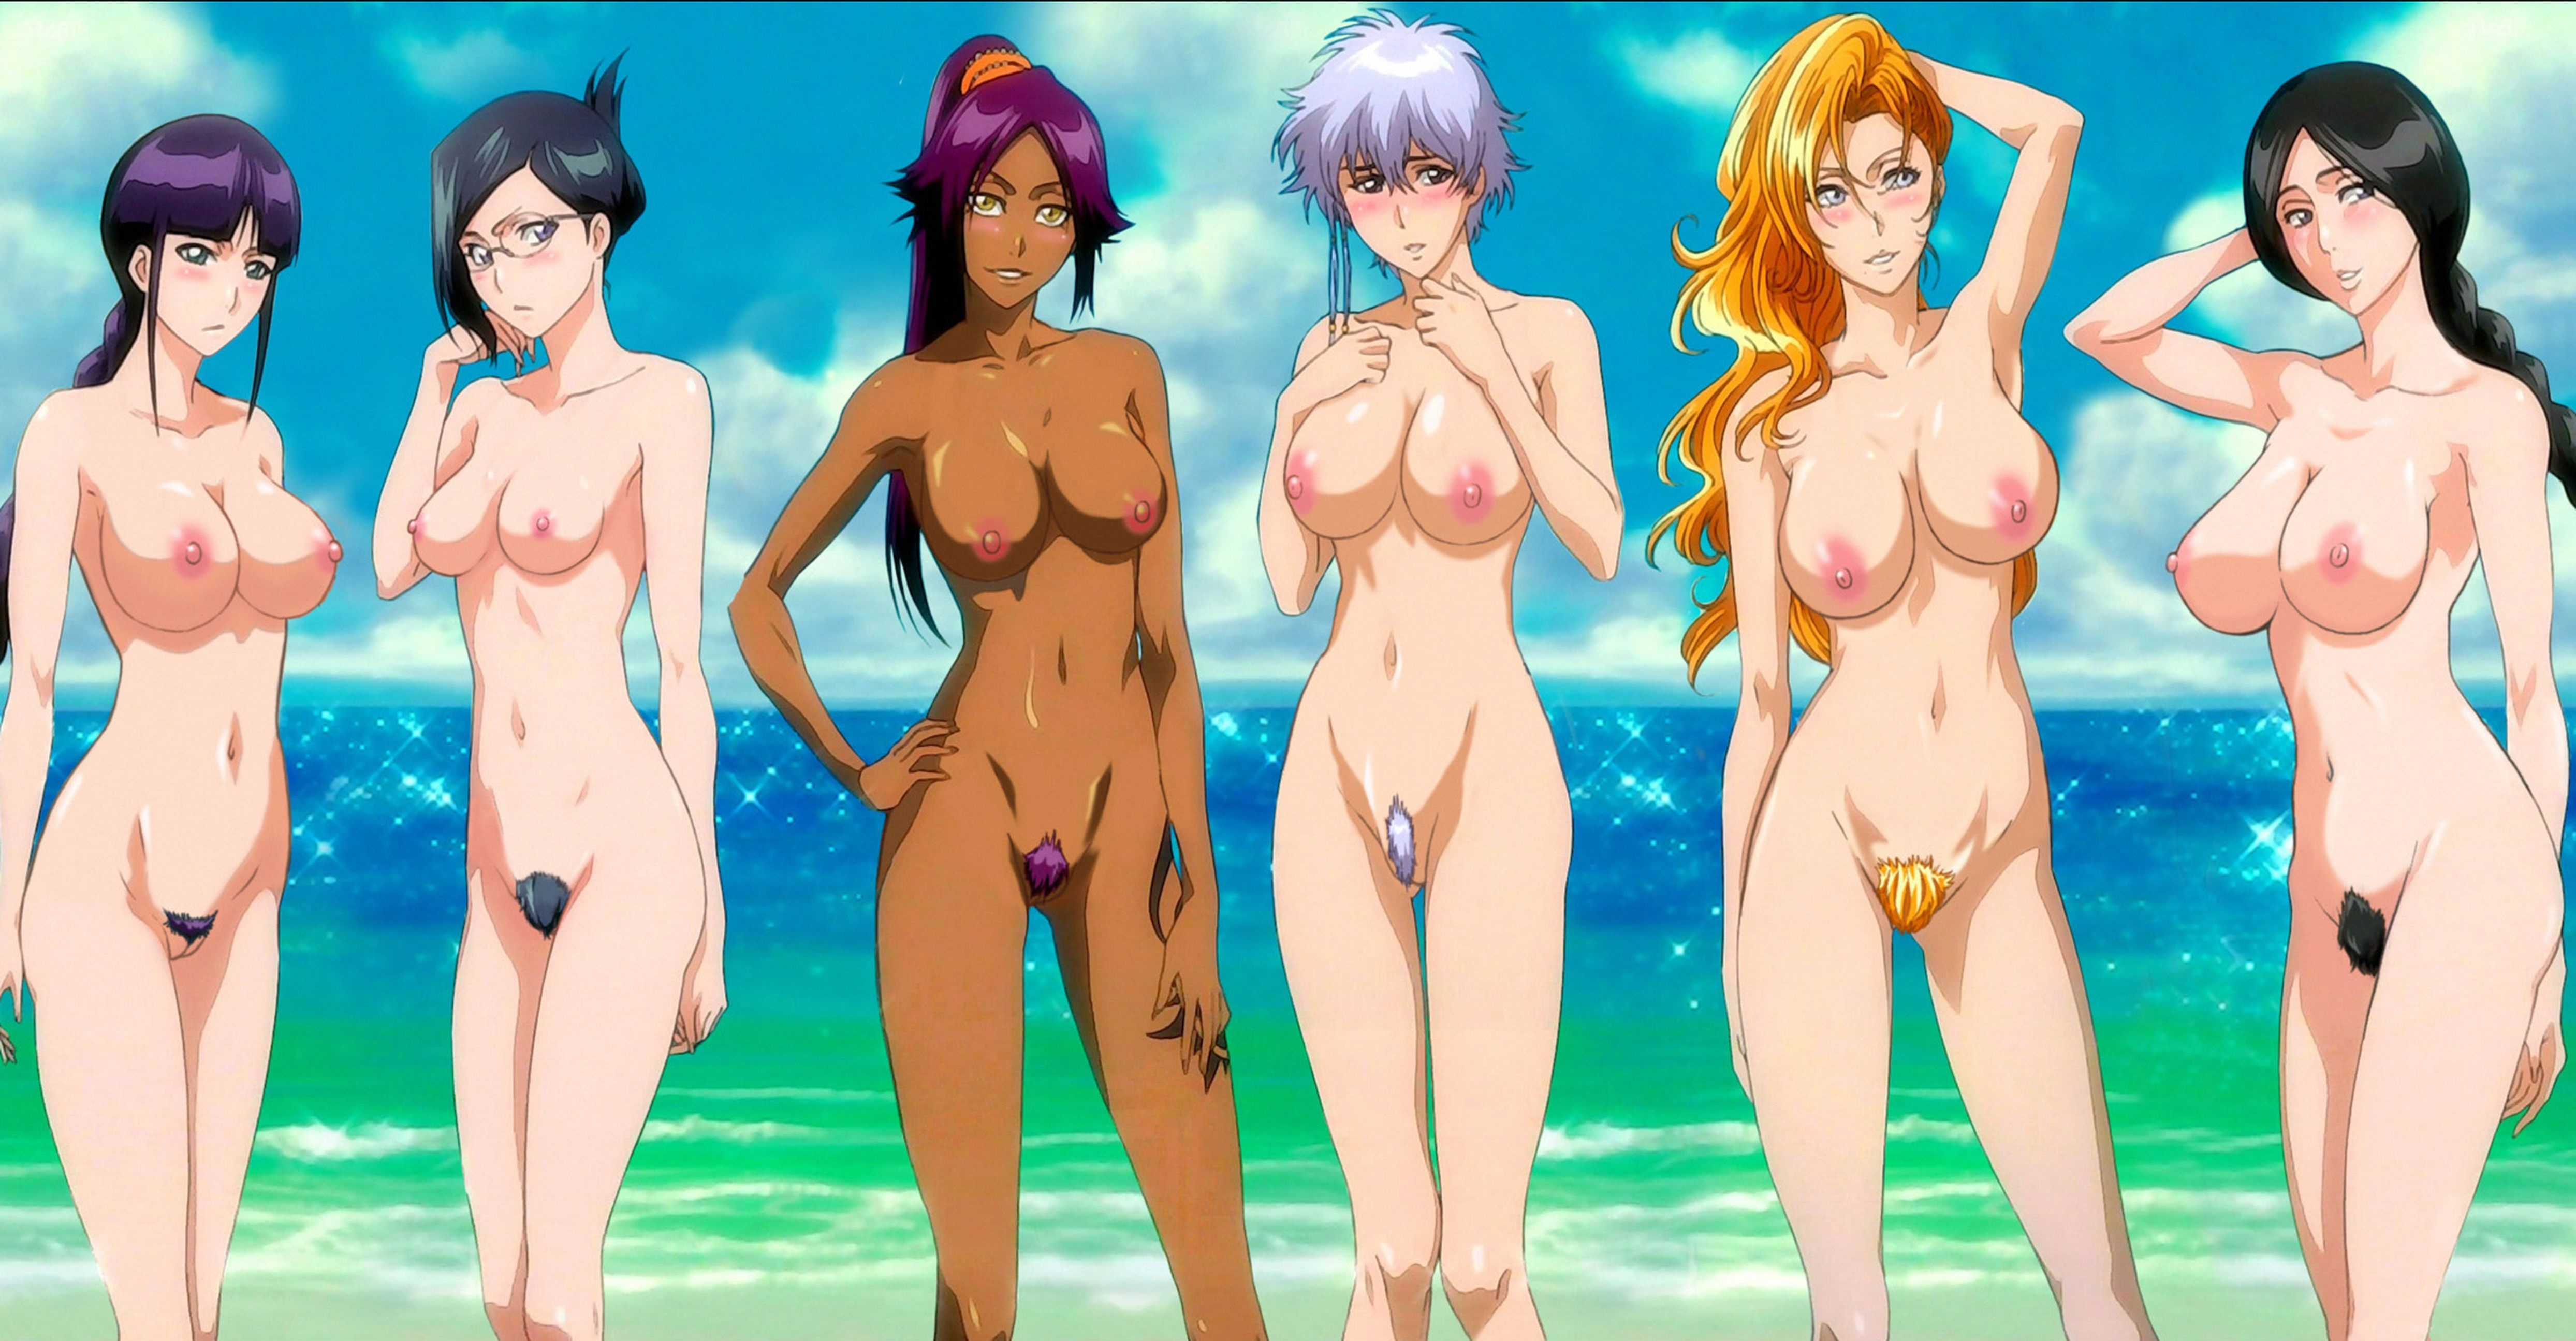 bleach characters naked pics